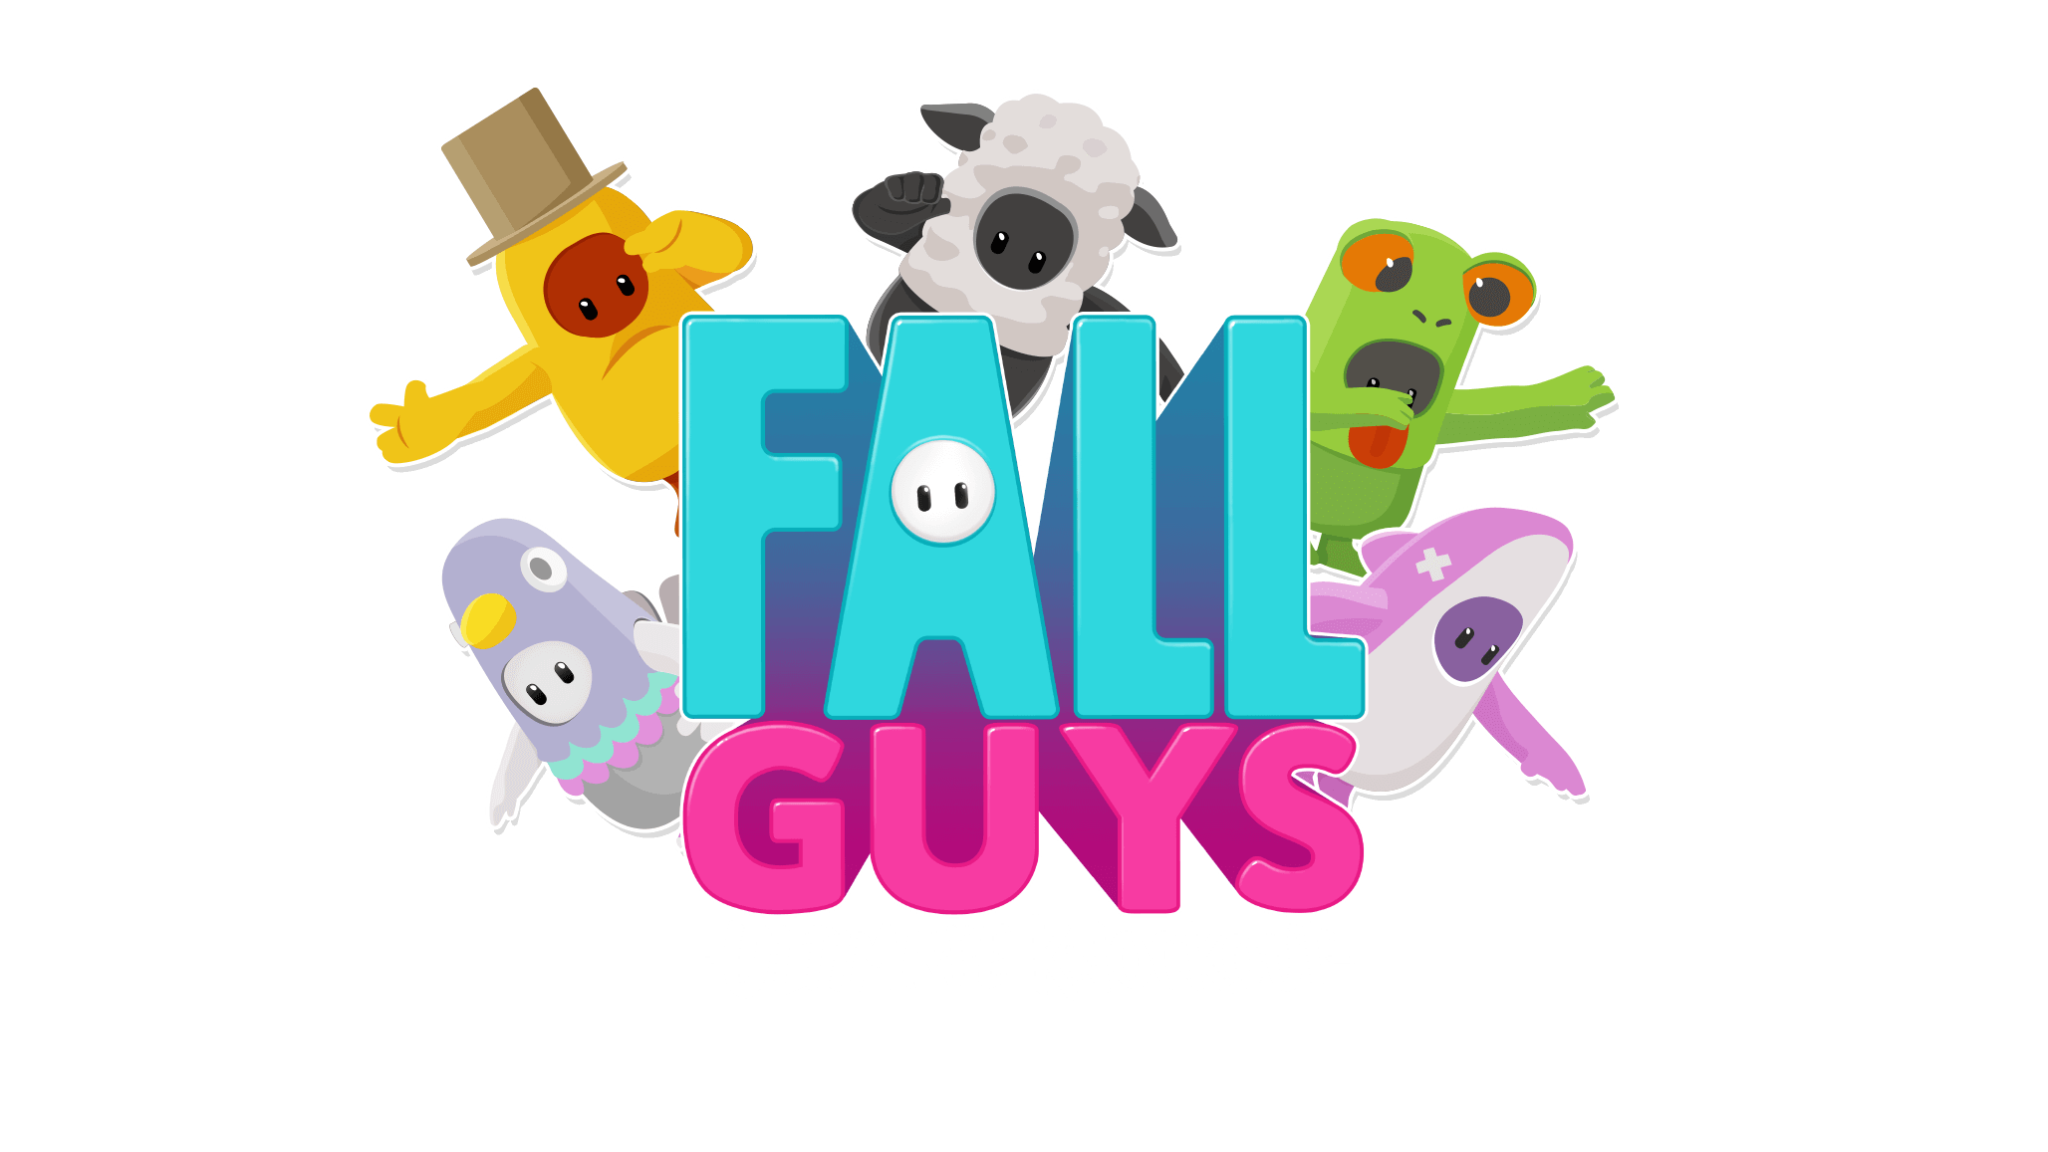 Fall Guys cover